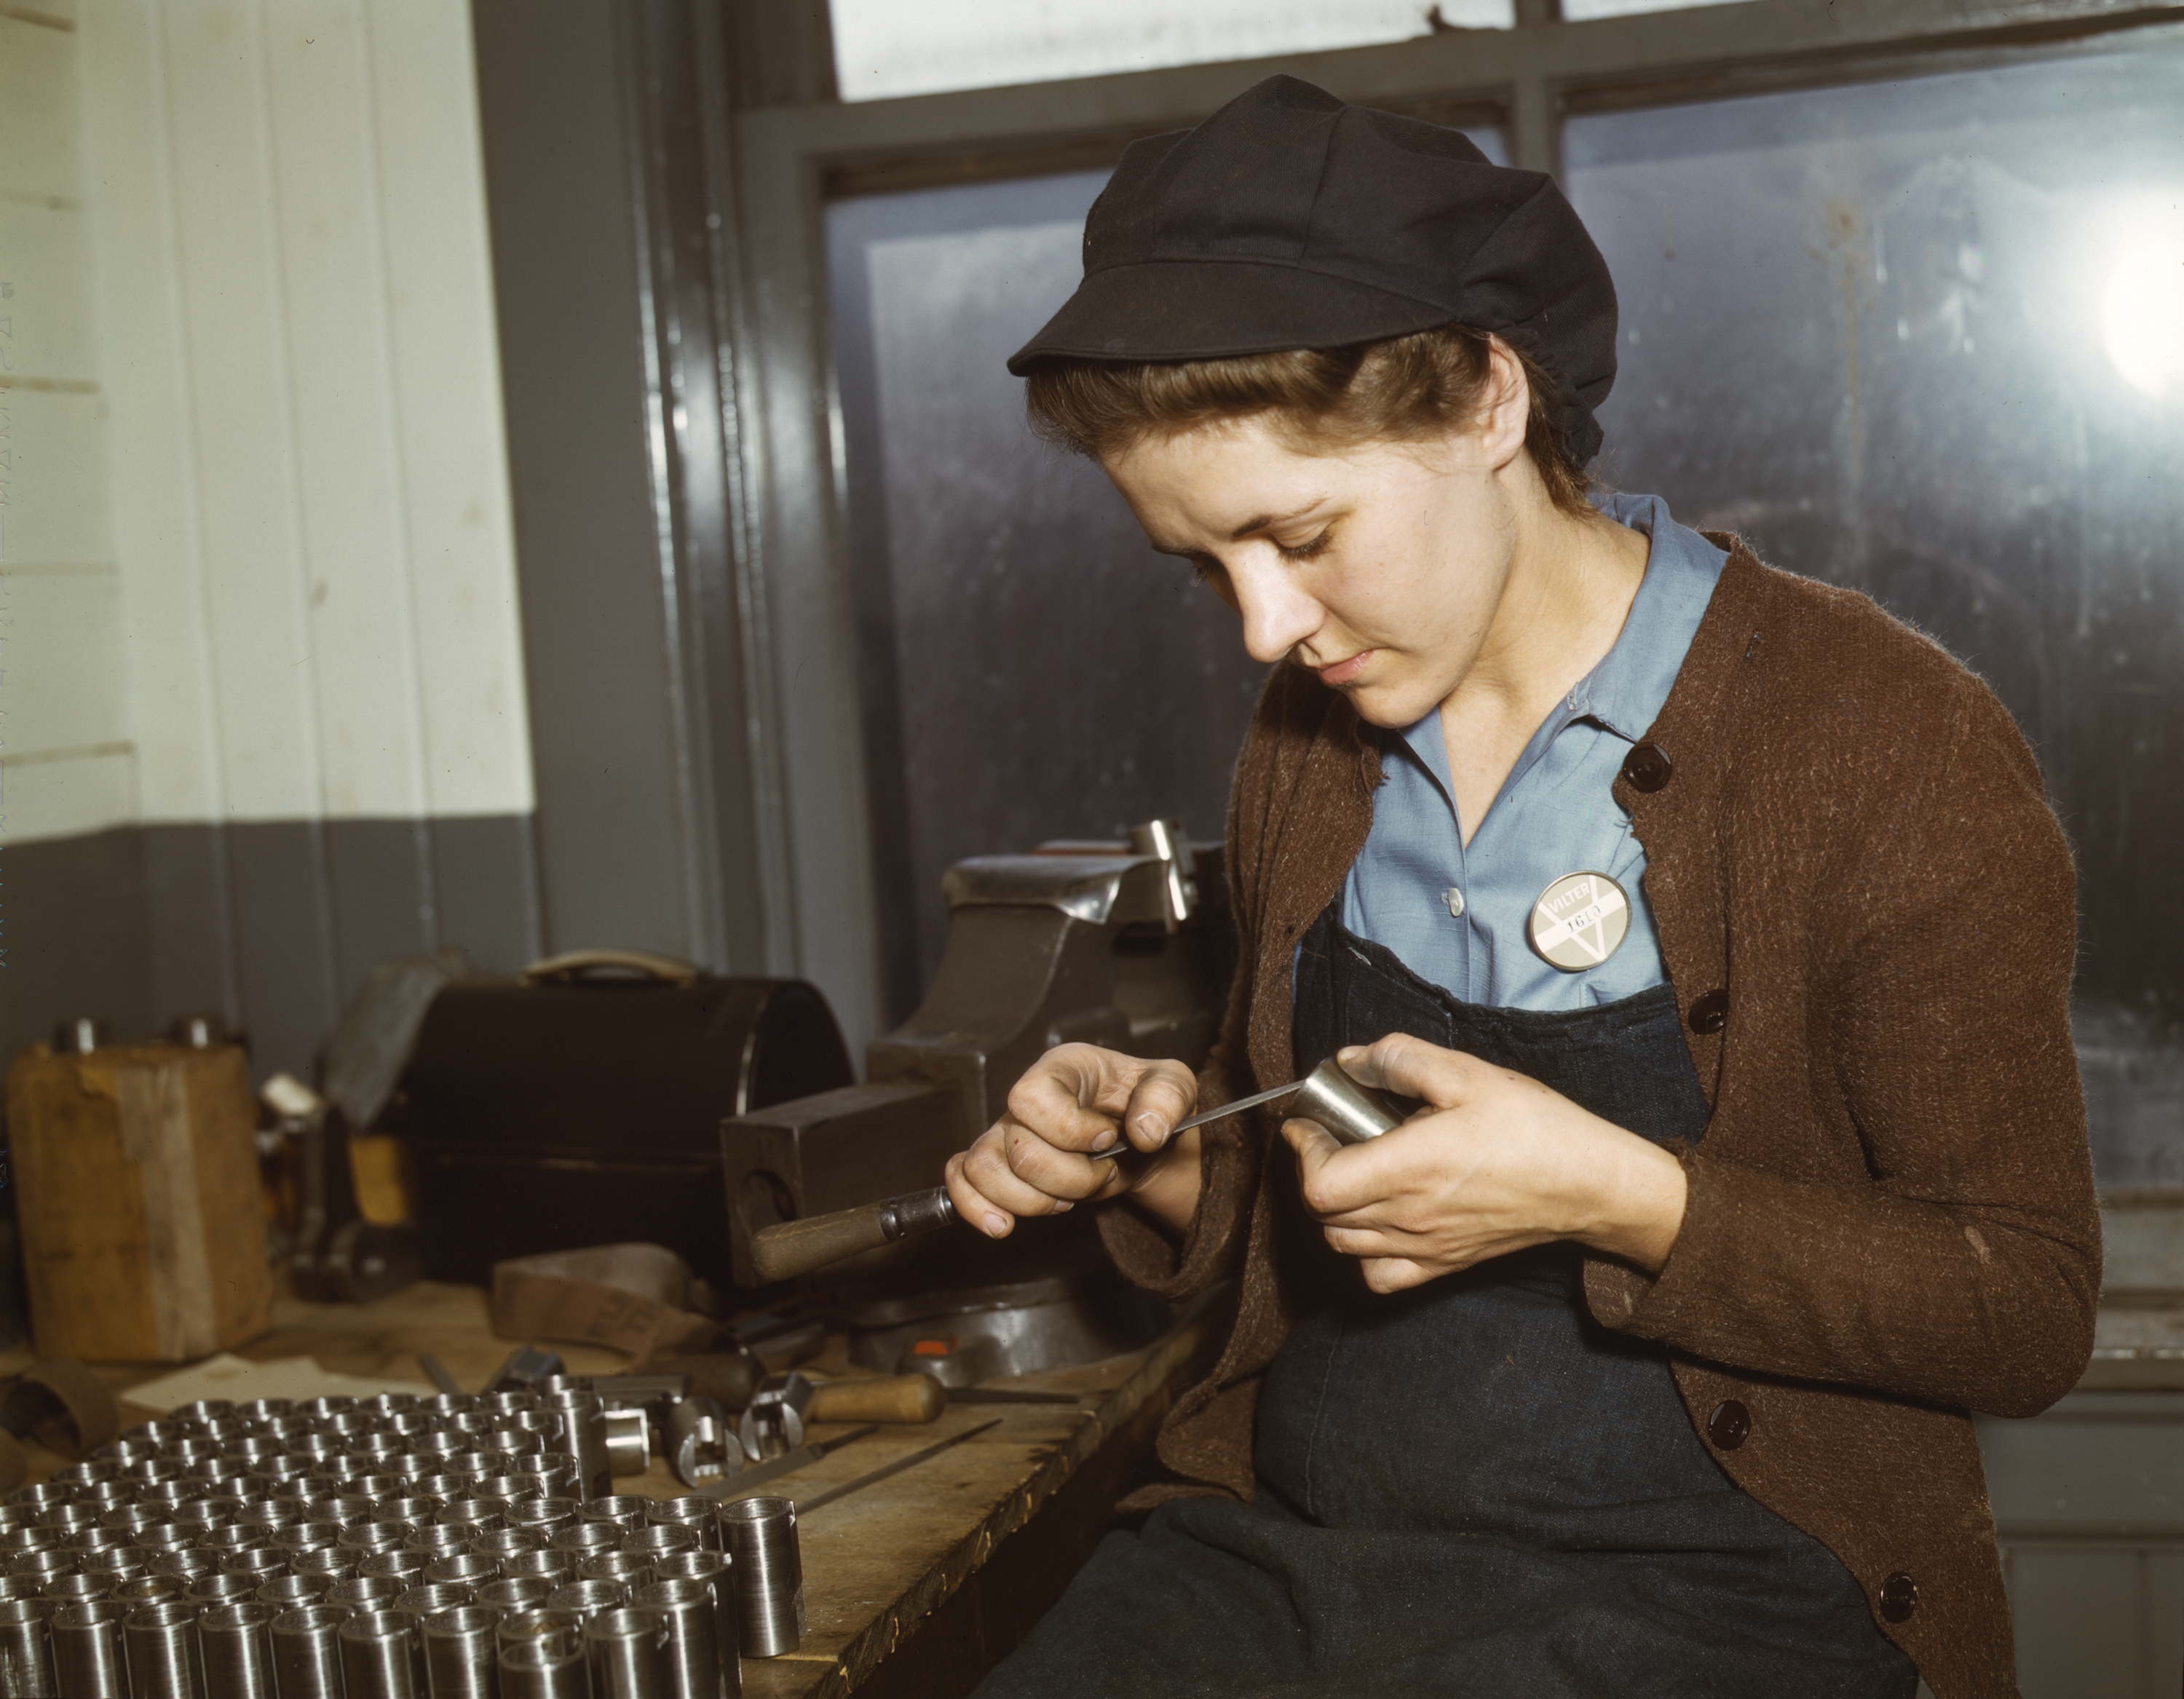 War Production Worker Making Gun Parts